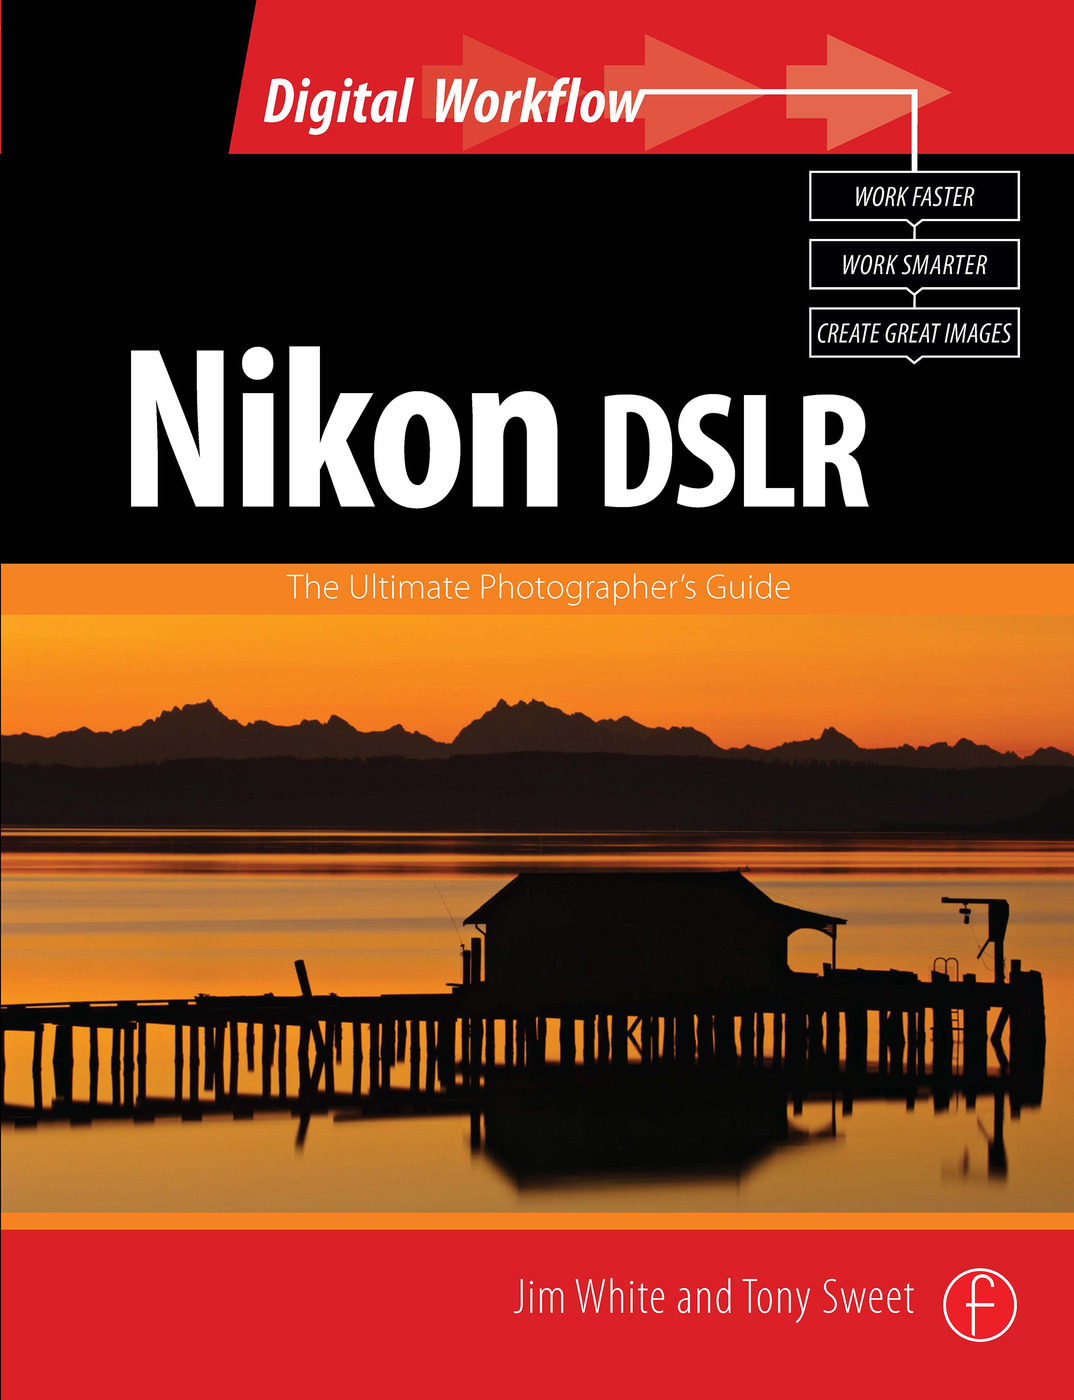 Nikon DSLR: The Ultimate Photographer's Guide book cover